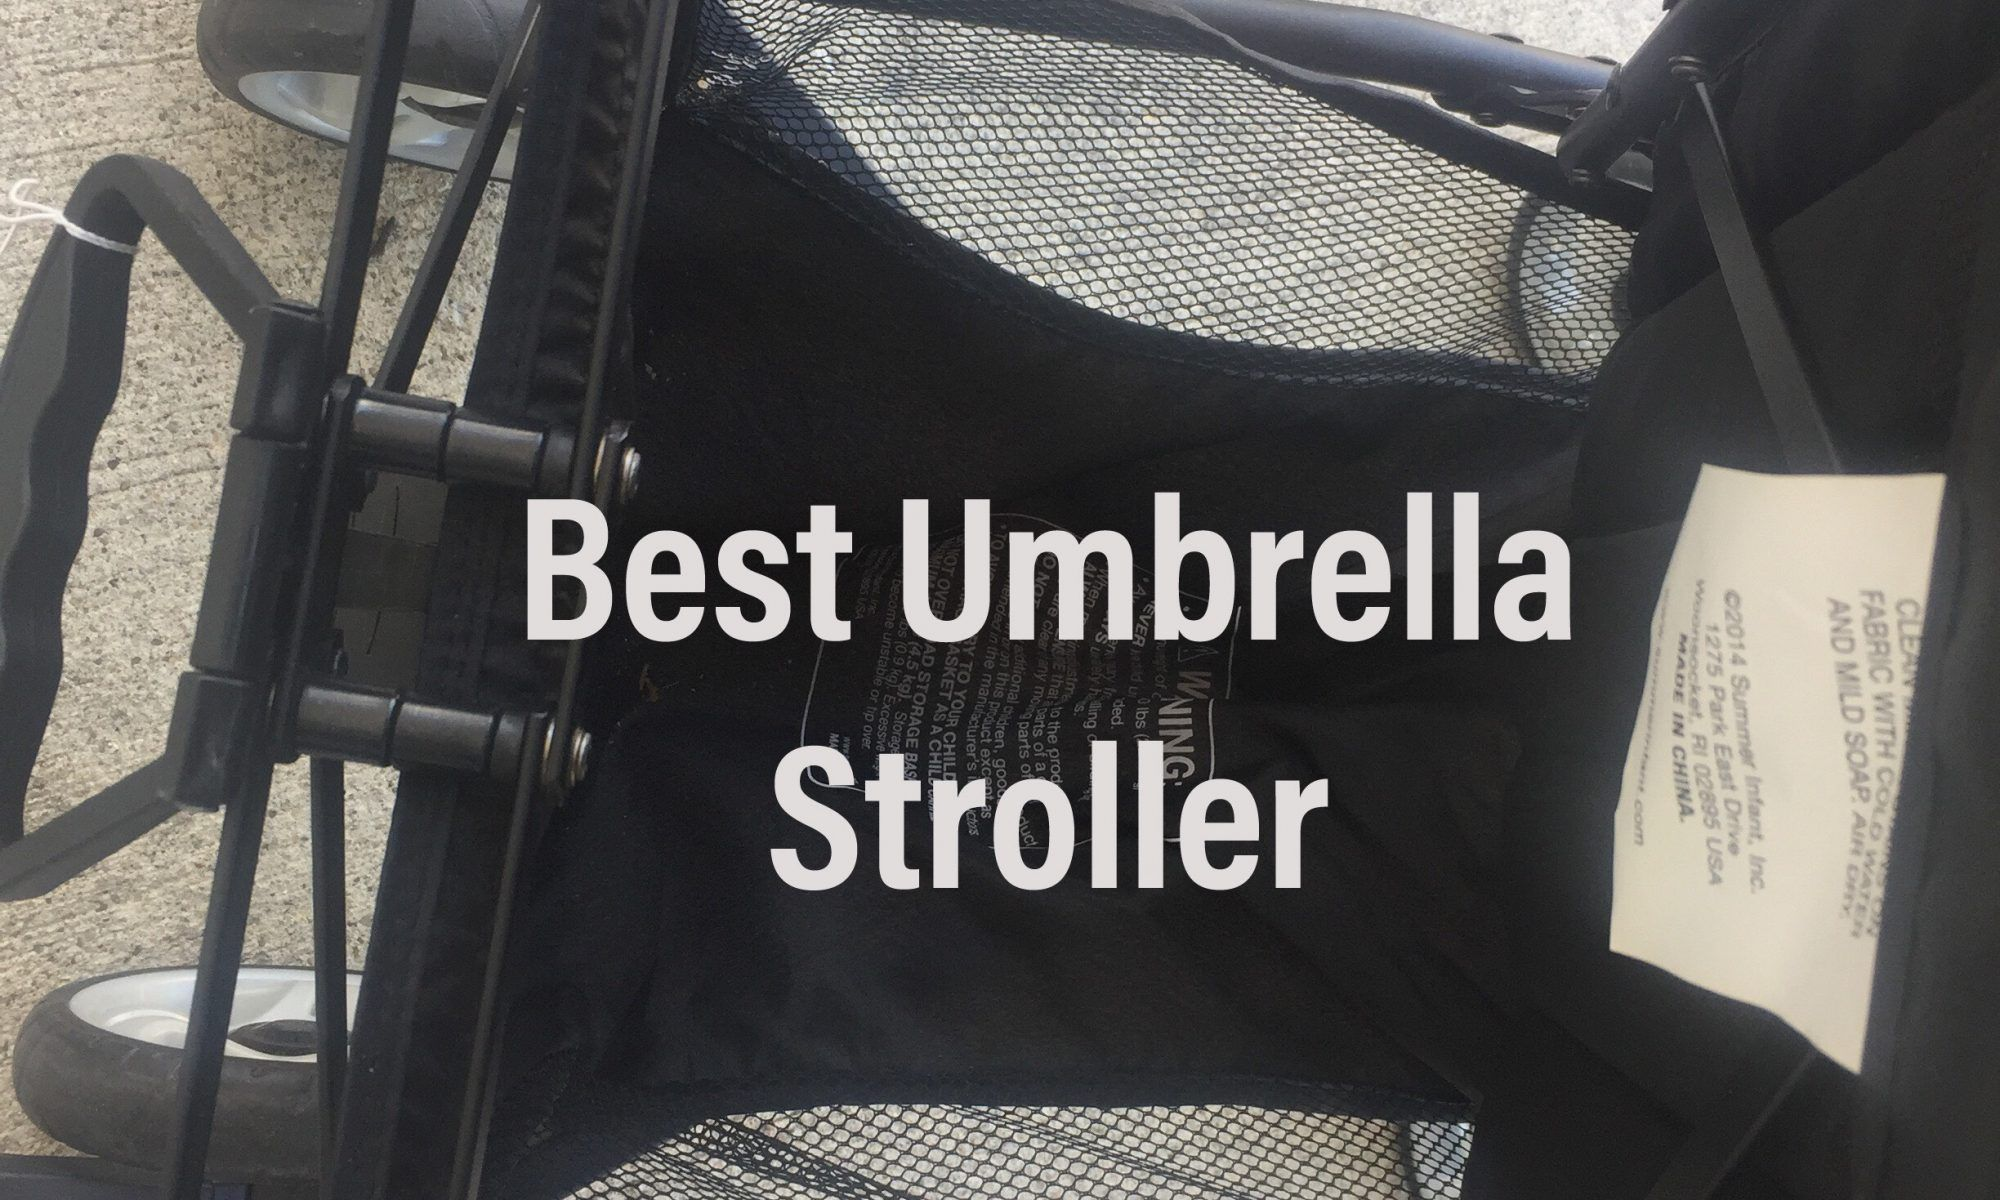 Best Umbrella Stroller – Spicy Taco and HUZ #bestumbrella